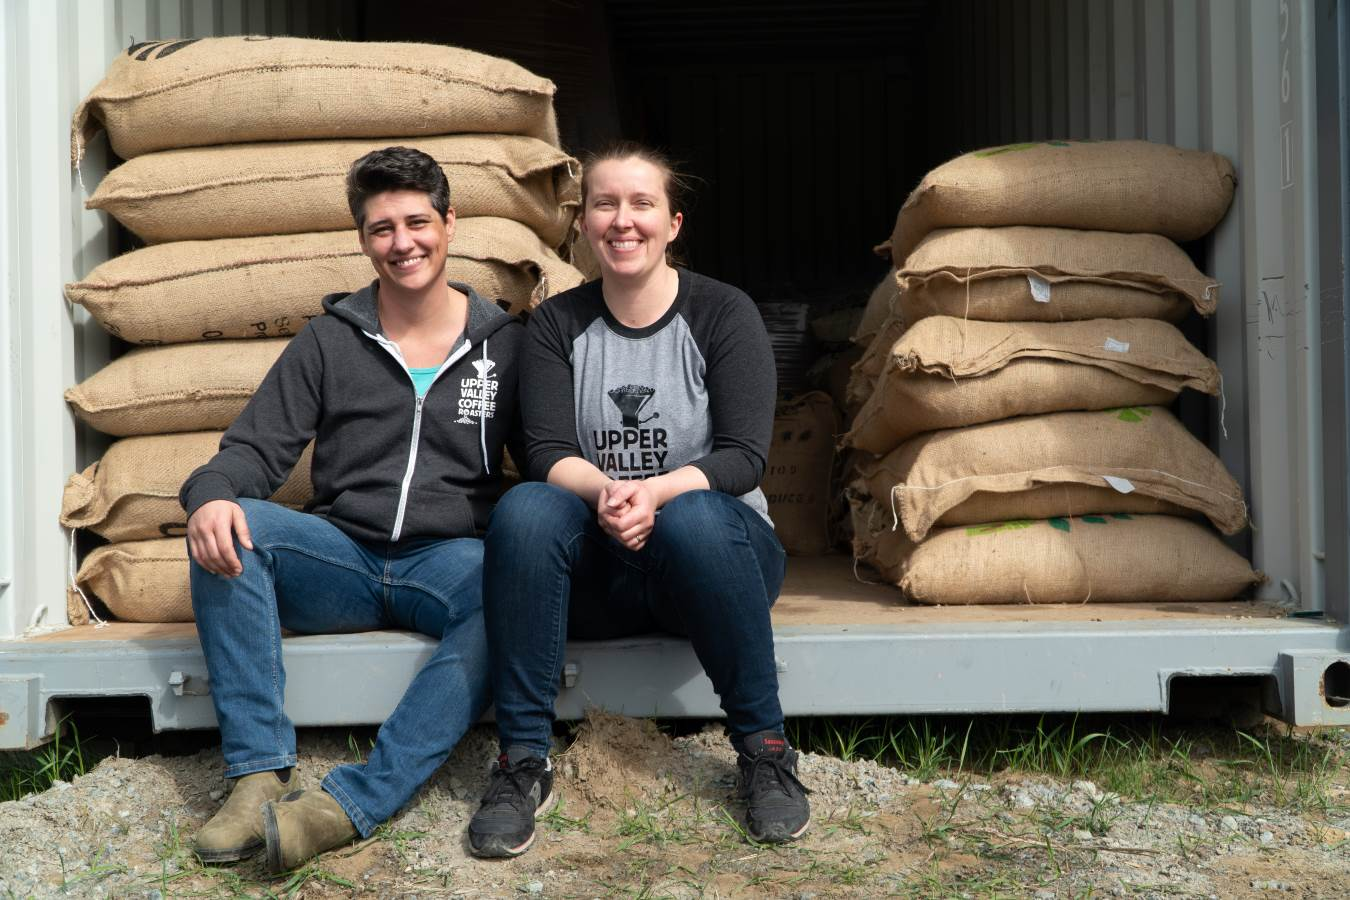 Cal and Andrea sitting in front of stacks of green coffee in burlap bags